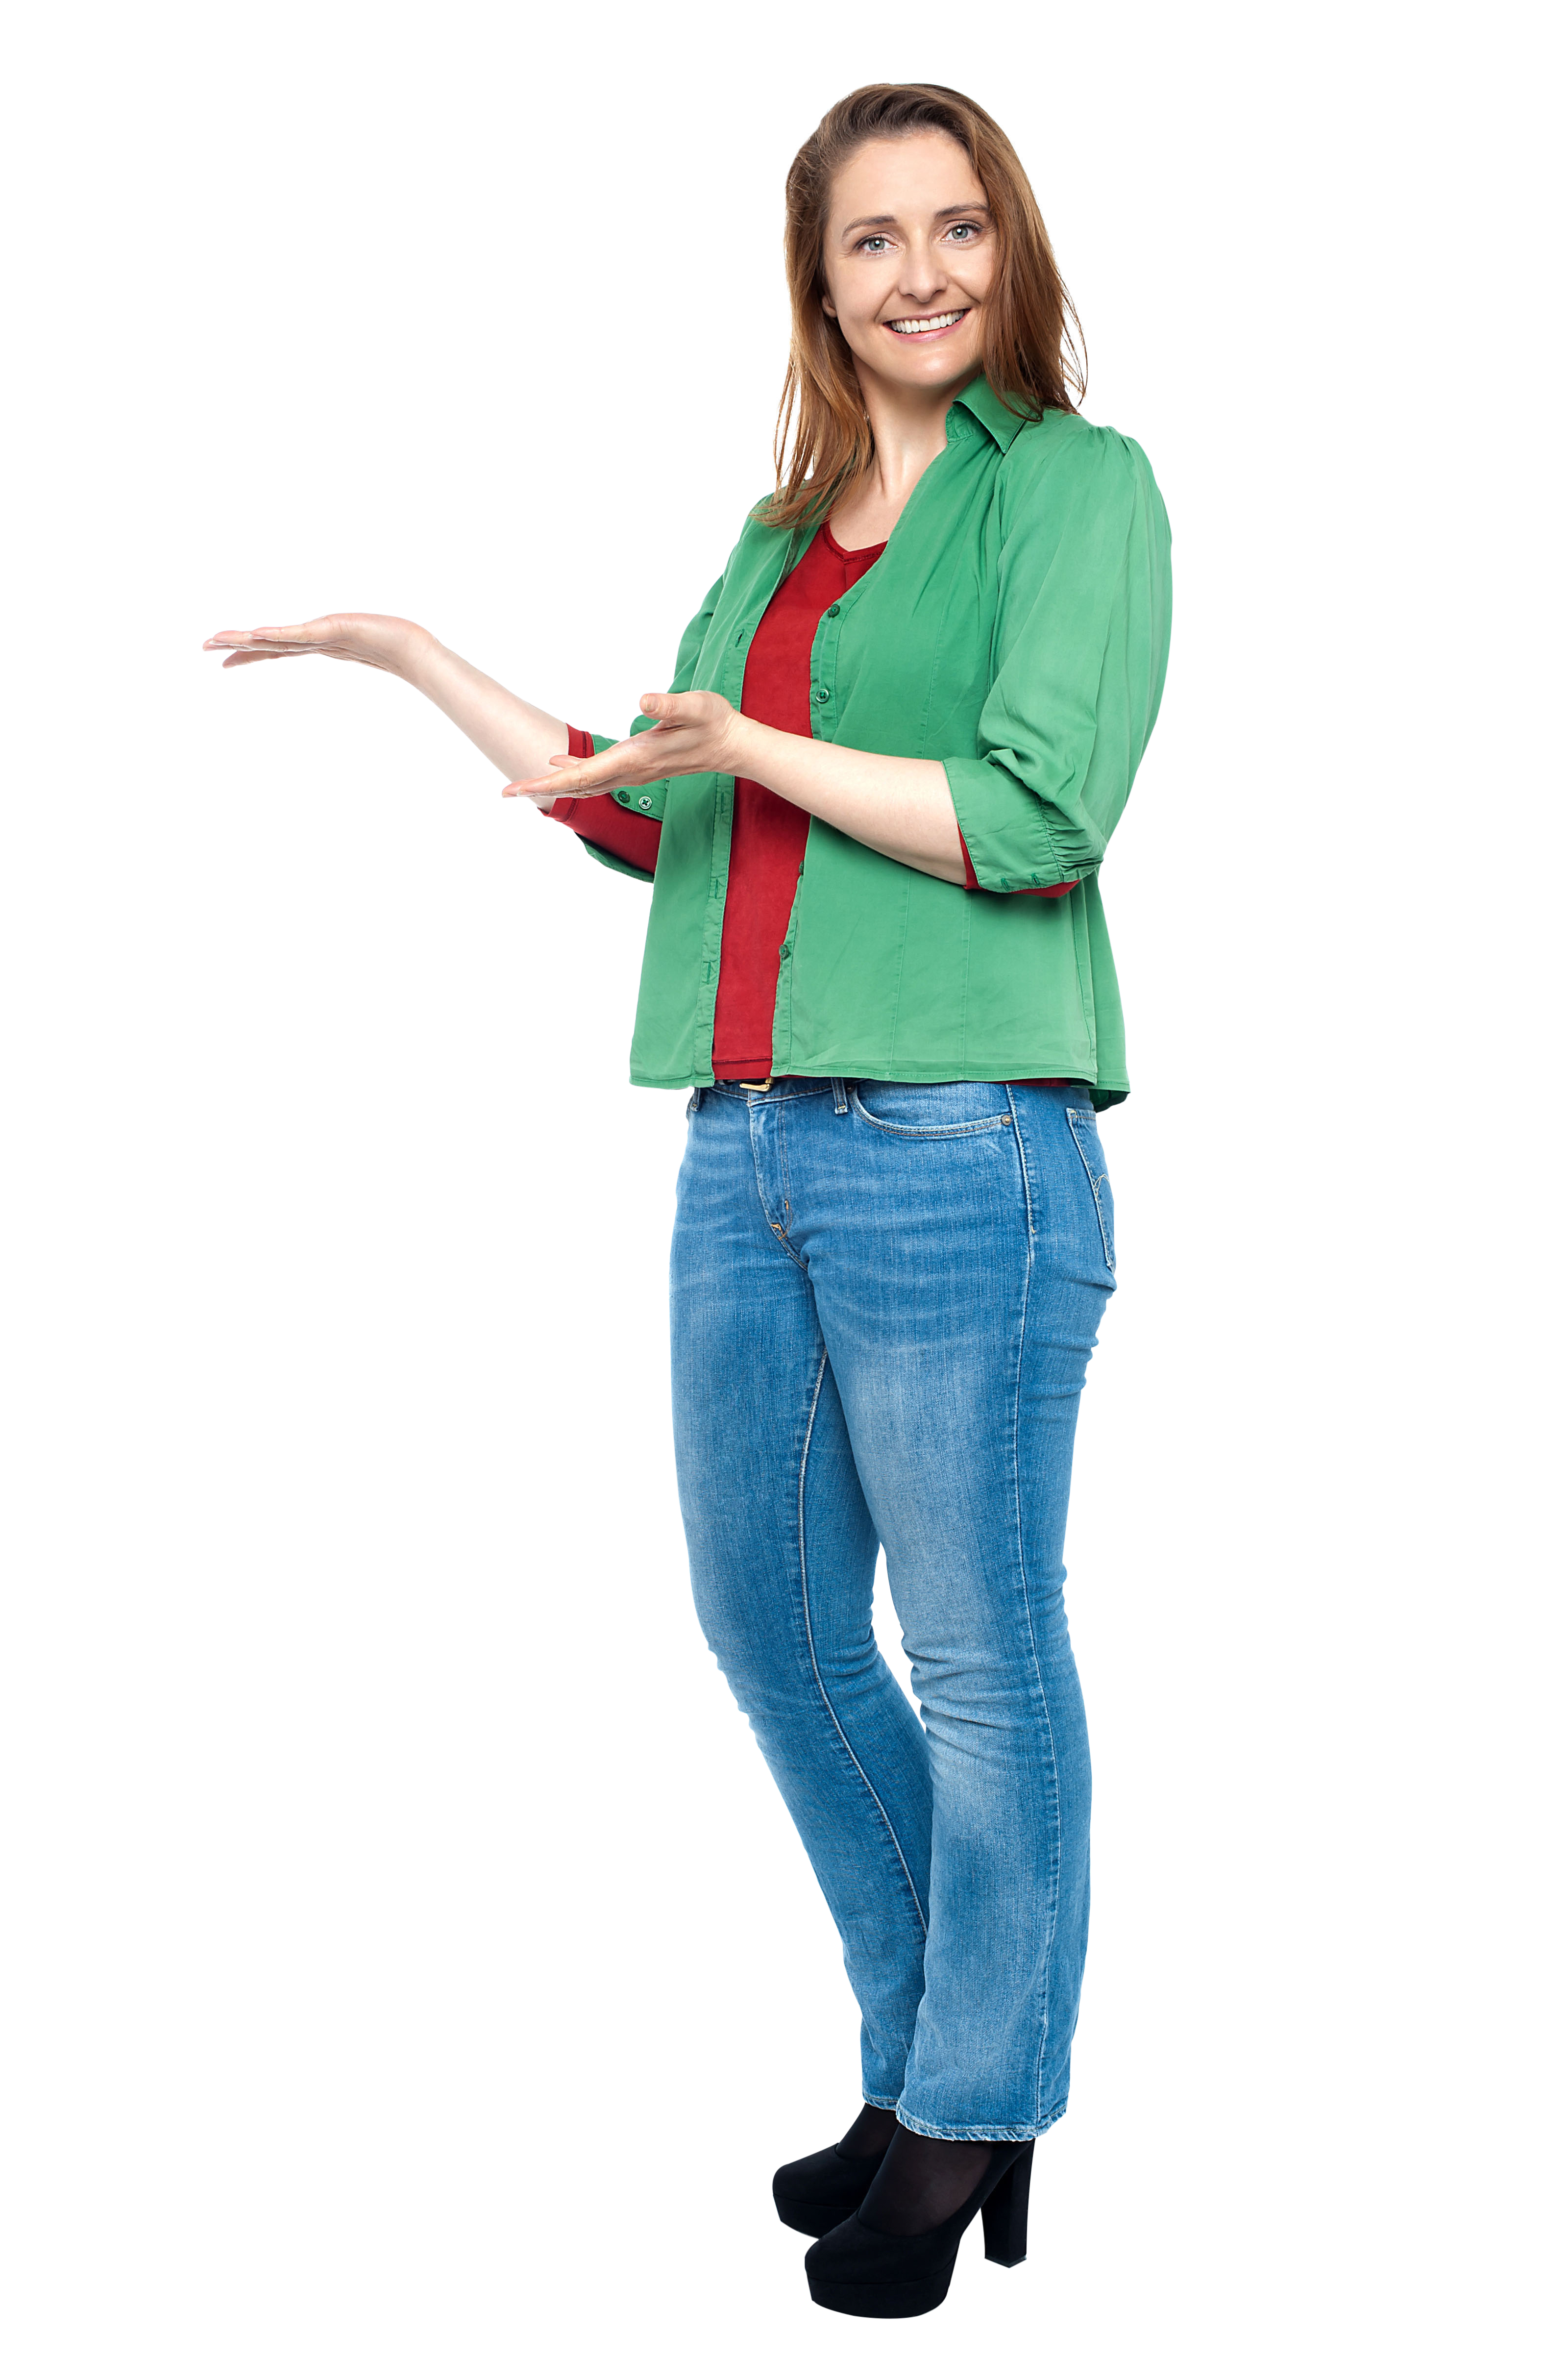 Women Pointing Left PNG Image